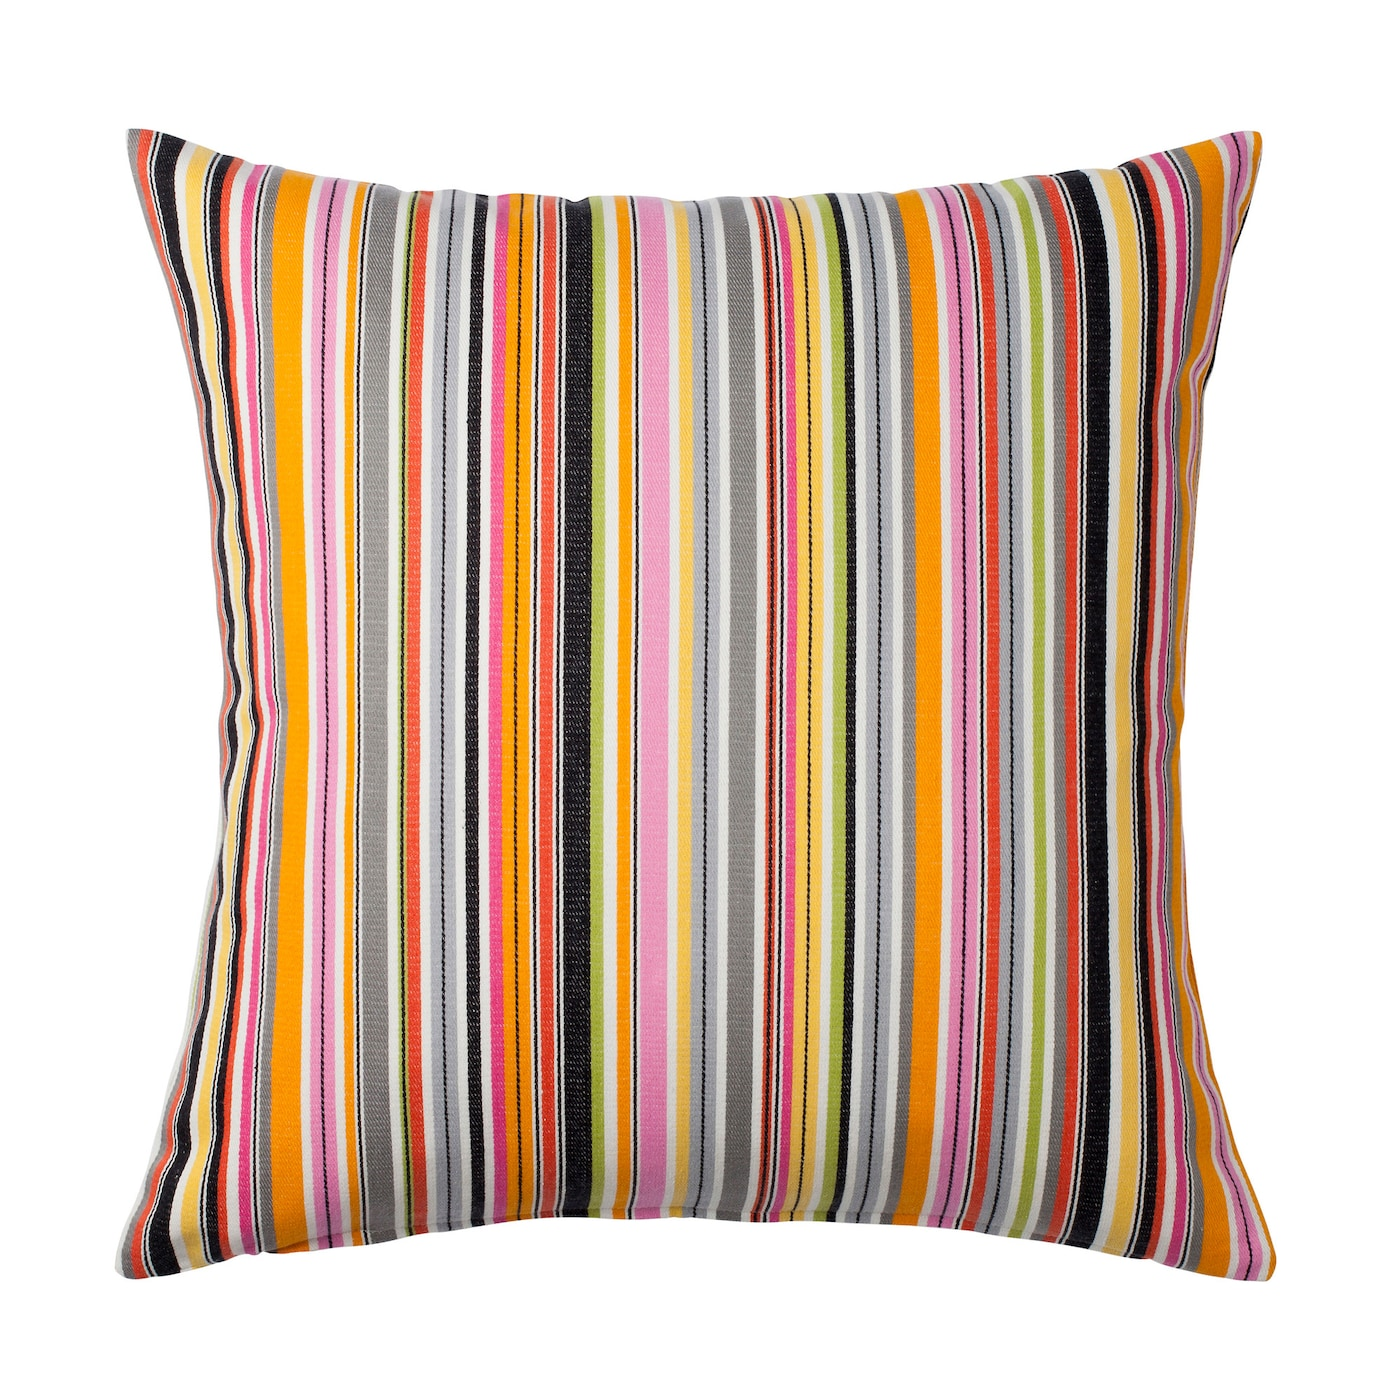 kervallmo cushion cover multicolour 50x50 cm ikea. Black Bedroom Furniture Sets. Home Design Ideas